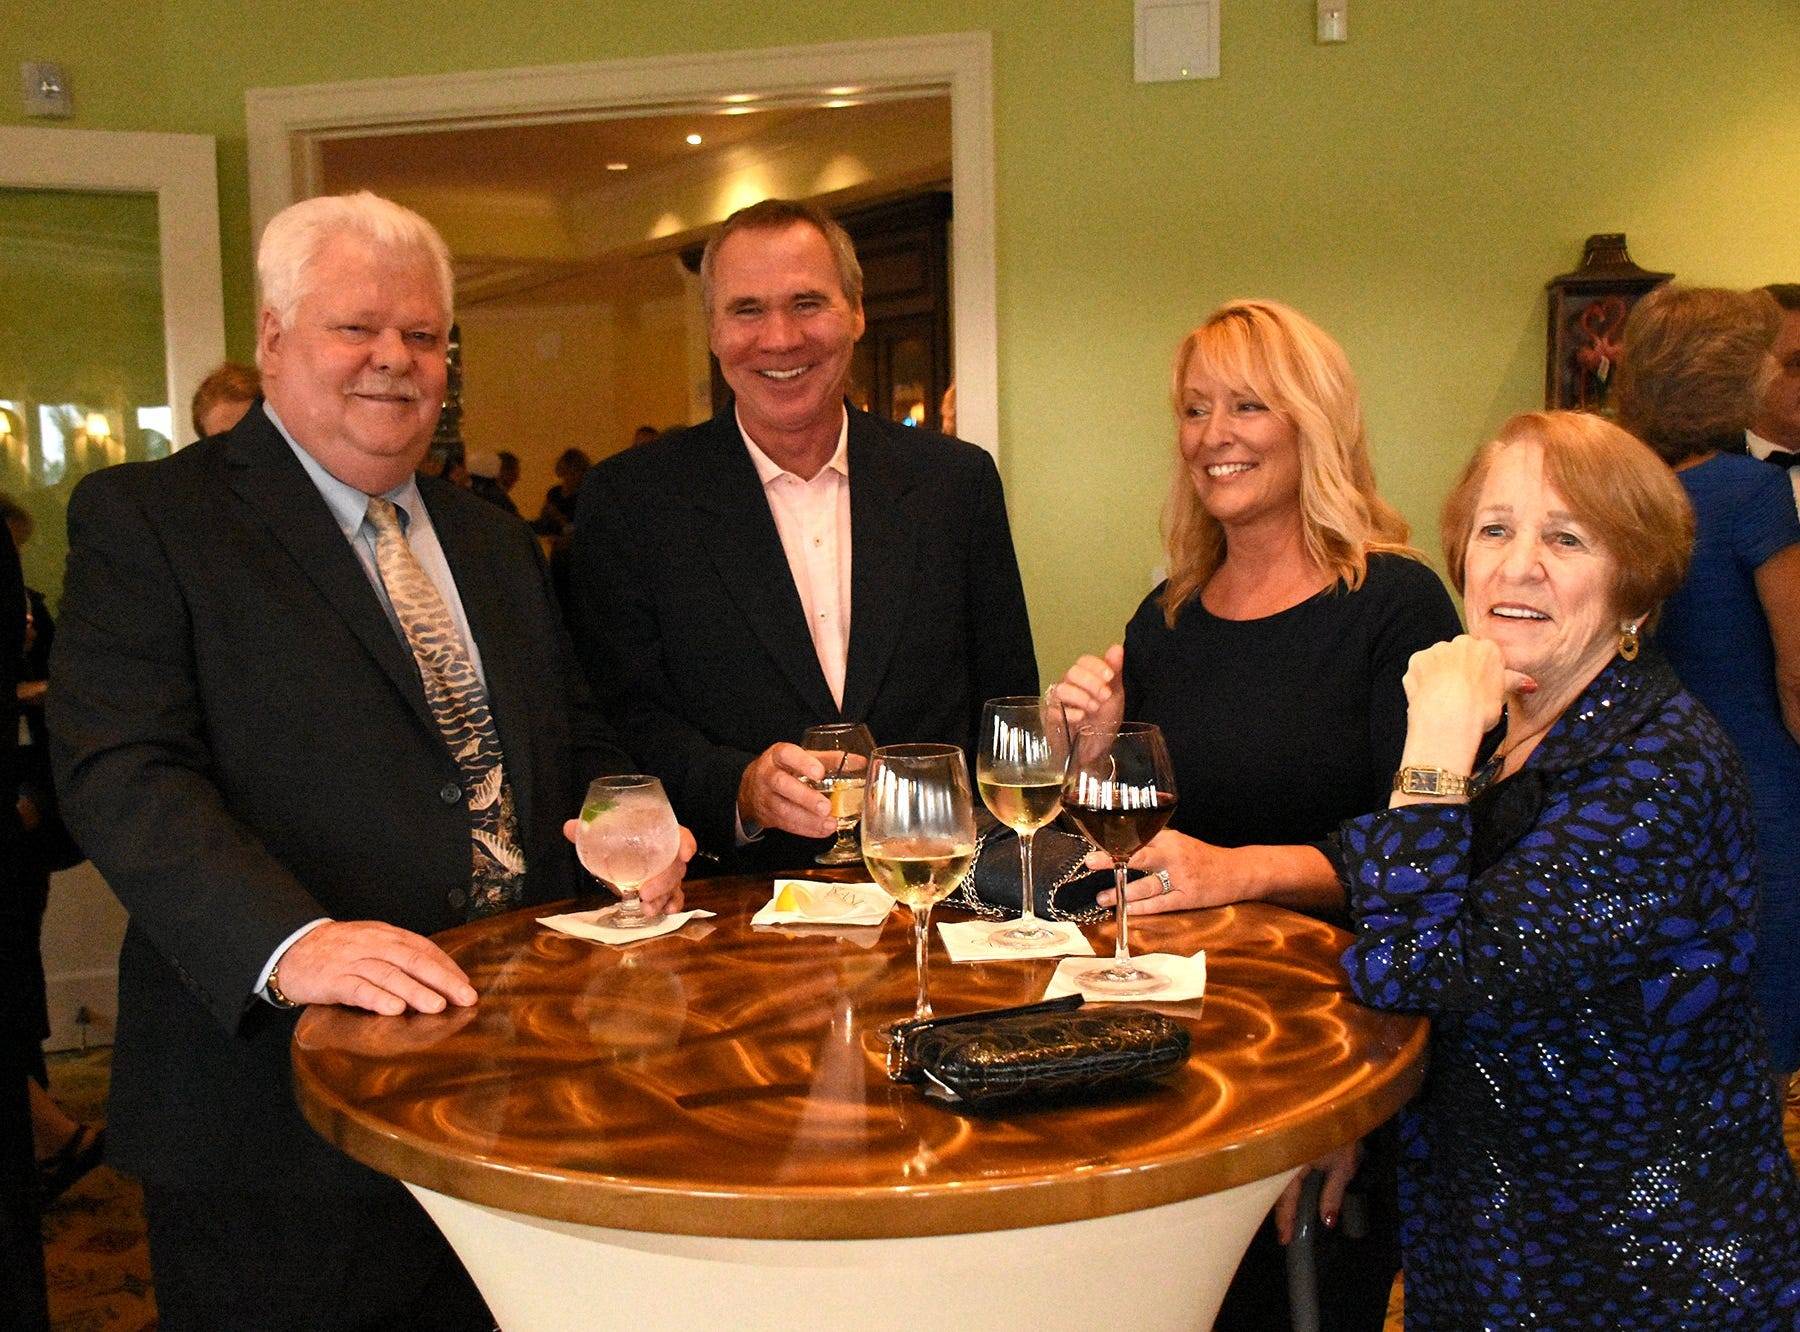 """Past president Ken Stroud, left, with Bruce and Monica Noel, and Lisa Hammond. The Marco Island Cdenter for the Arts held """"Celebrate Art by the Sea,"""" their annual gala, Saturday evening at the Island Country Club."""